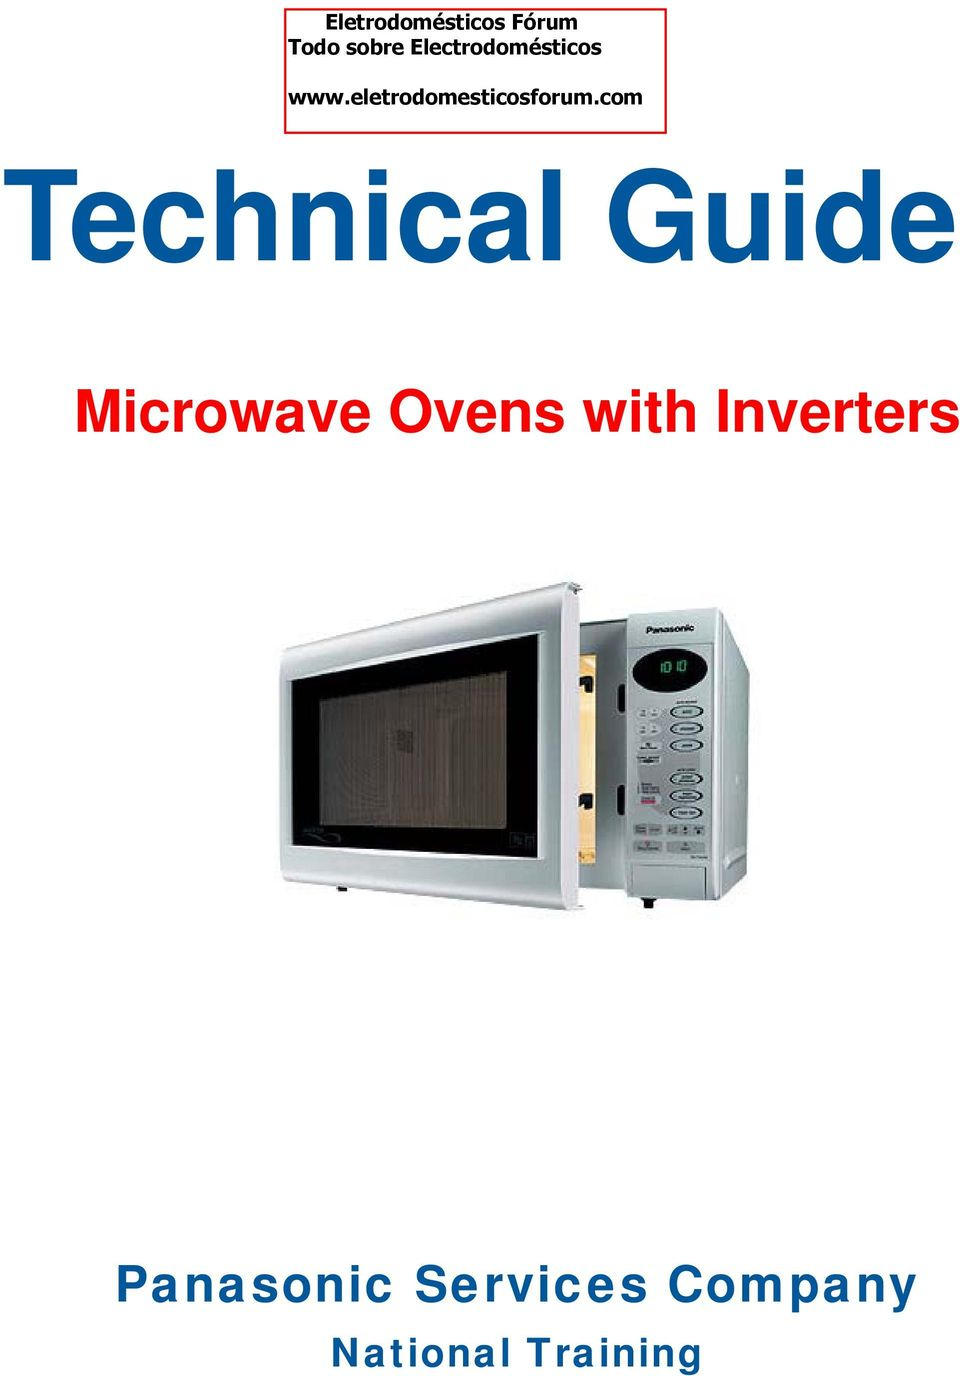 technical guide microwave ovens with inverters panasonic servicesParts Diagram Parts List For Model Nnc980w Panasonicparts Microwave #13